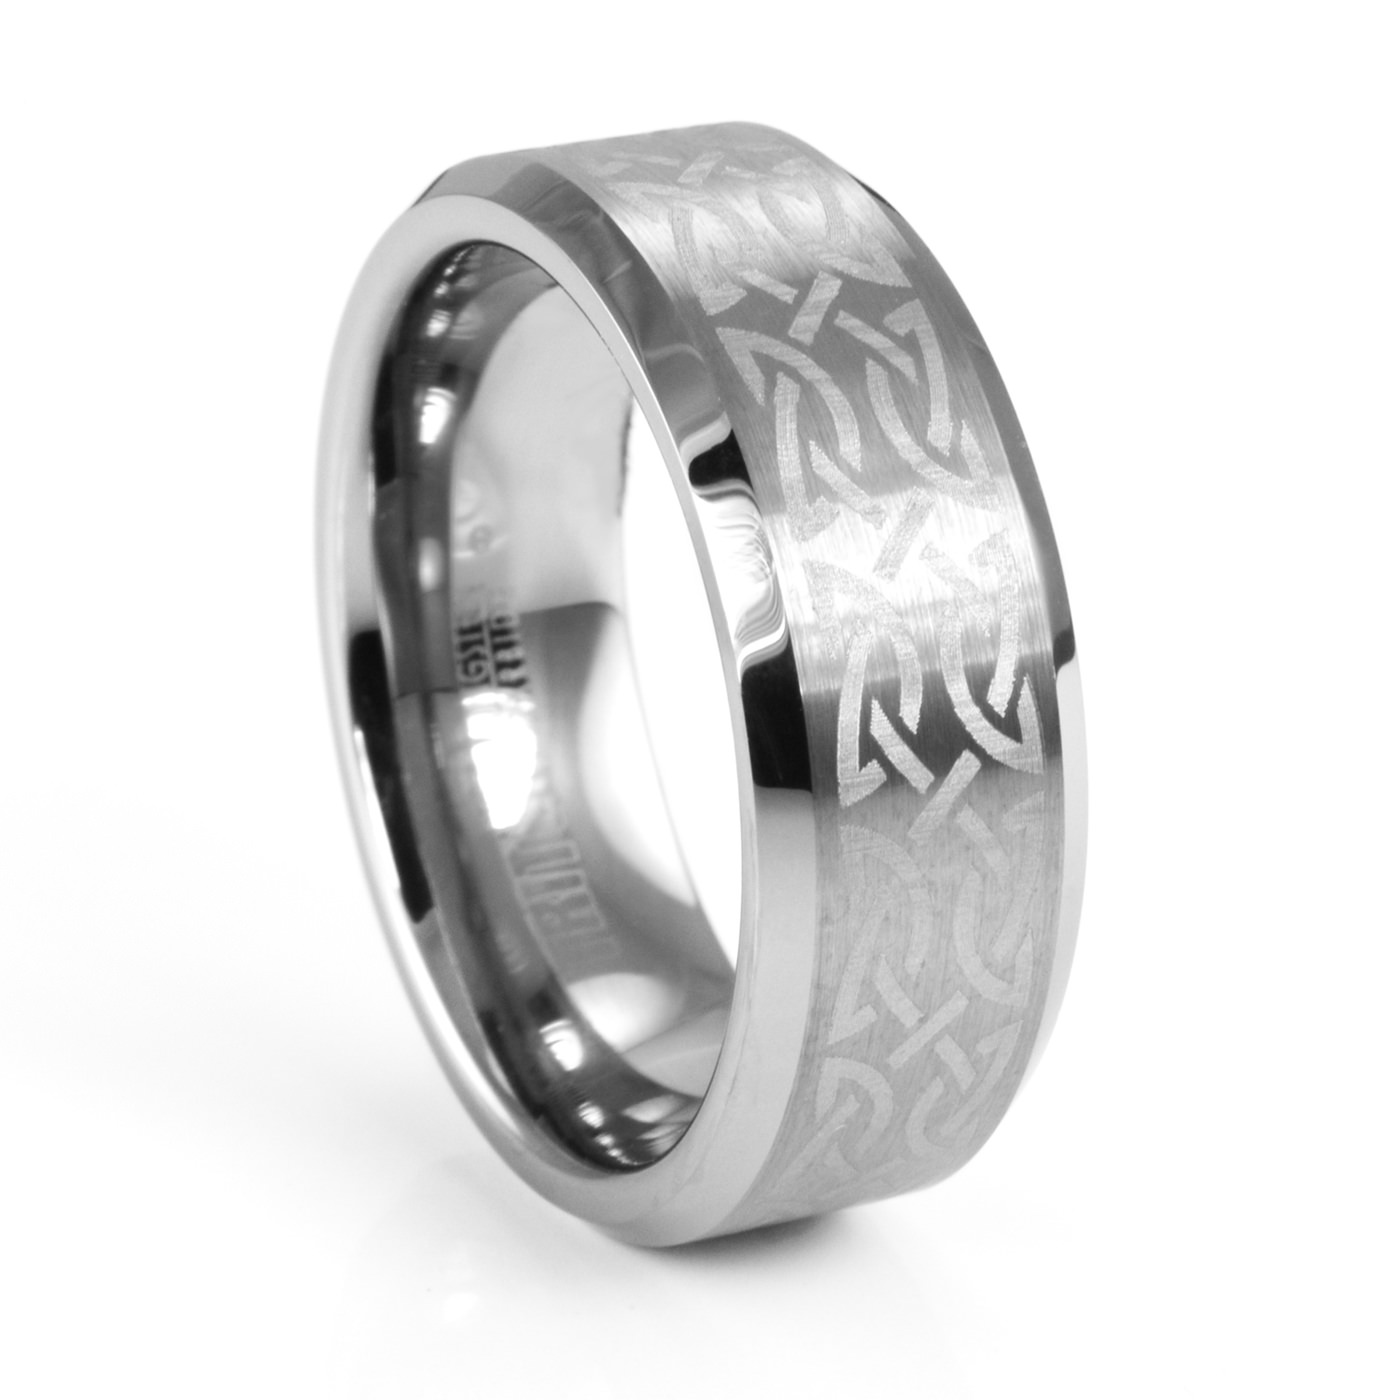 ring wedding design rings tr men triton gaelic carbide celtic engraved s by tungsten